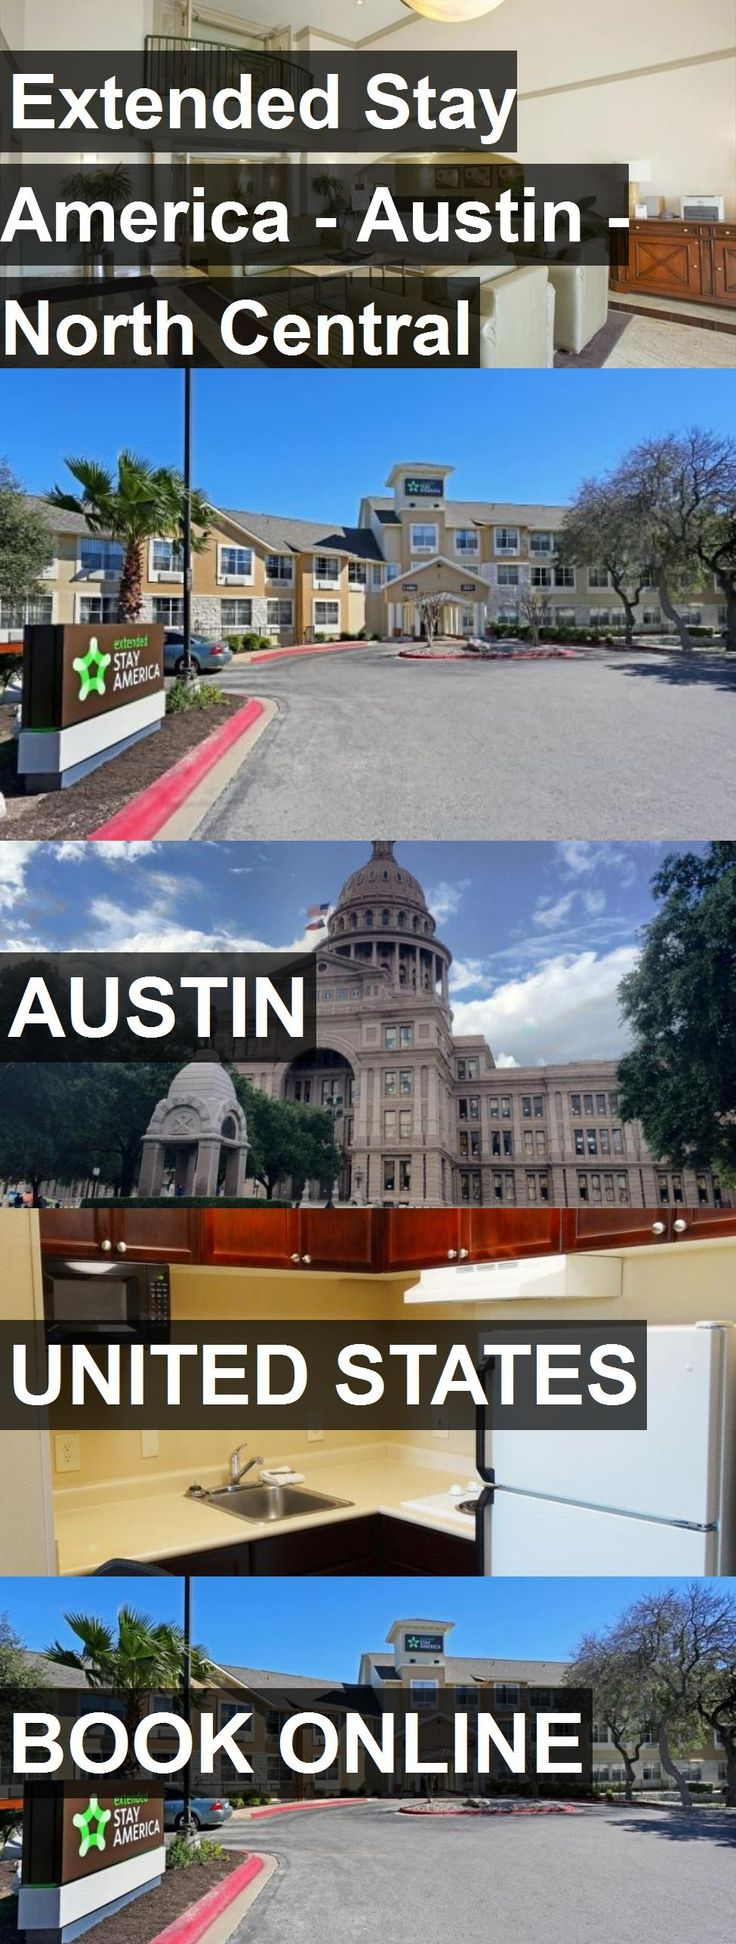 Hotel Extended Stay America - Austin - North Central in Austin, United States. For more information, photos, reviews and best prices please follow the link. #UnitedStates #Austin #hotel #travel #vacation